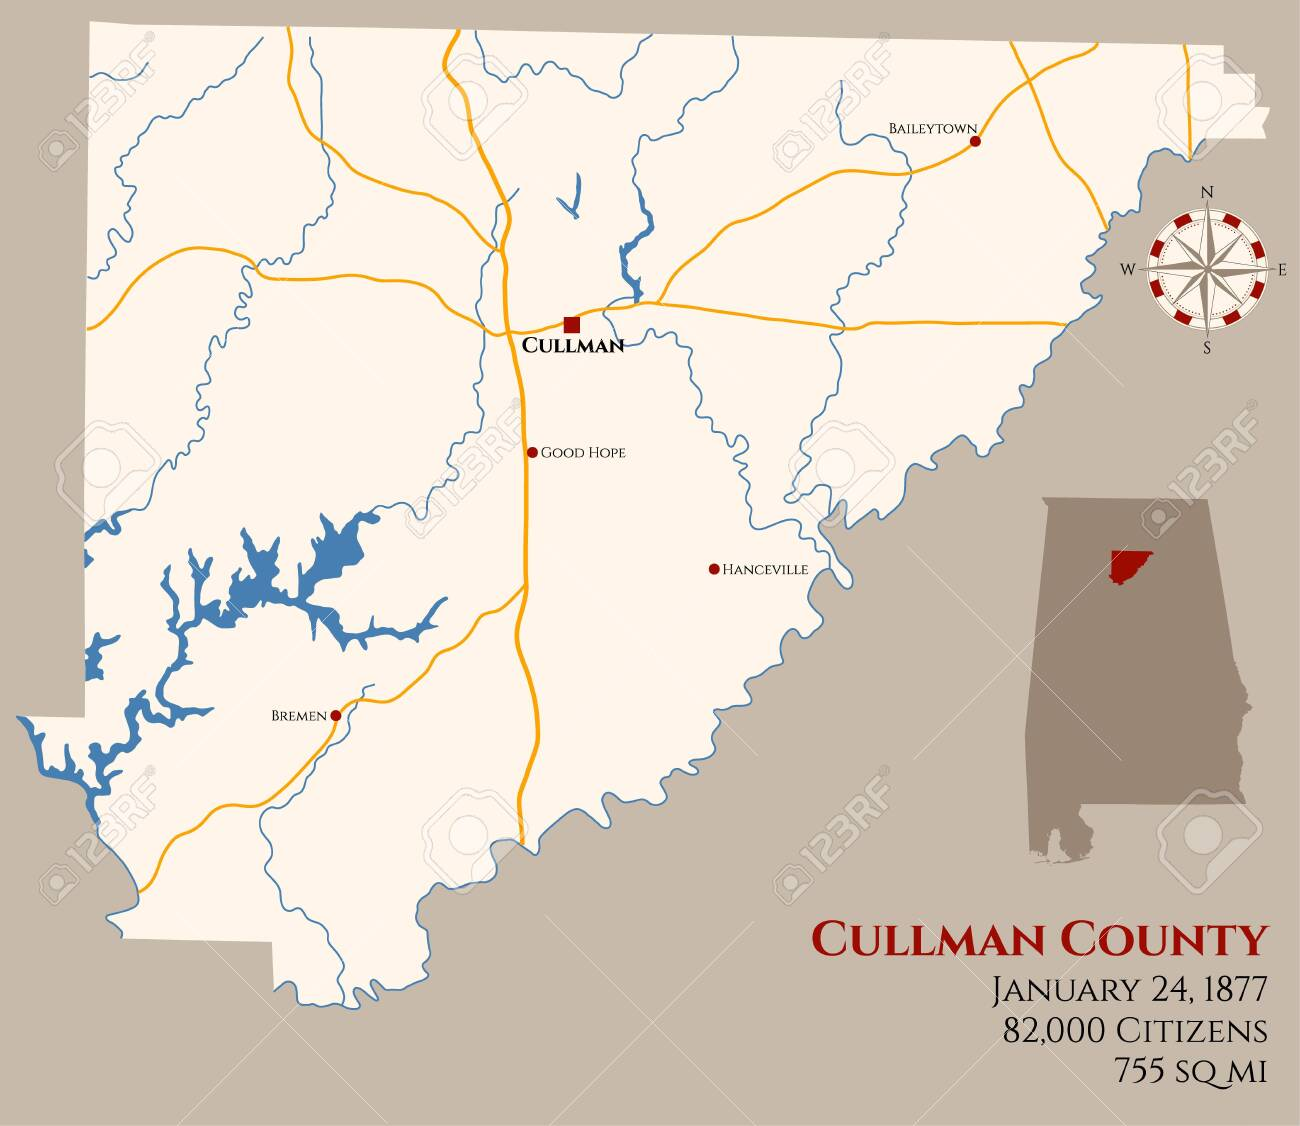 Large and detailed map of Cullman County in Alabama, USA on map of nevada usa, map of georgia usa, map of st. vincent and the grenadines, map of america usa, map of san antonio usa, map of northeastern usa, map of northwestern usa, map of midwest states usa, map of southern usa, map of the south usa, map of carolinas usa, map delaware usa, map arkansas usa, map of washington dc usa, map of richmond usa, map of mexico usa, map of southeast usa, map of boston usa, colorado map usa, map of pacific northwest usa,